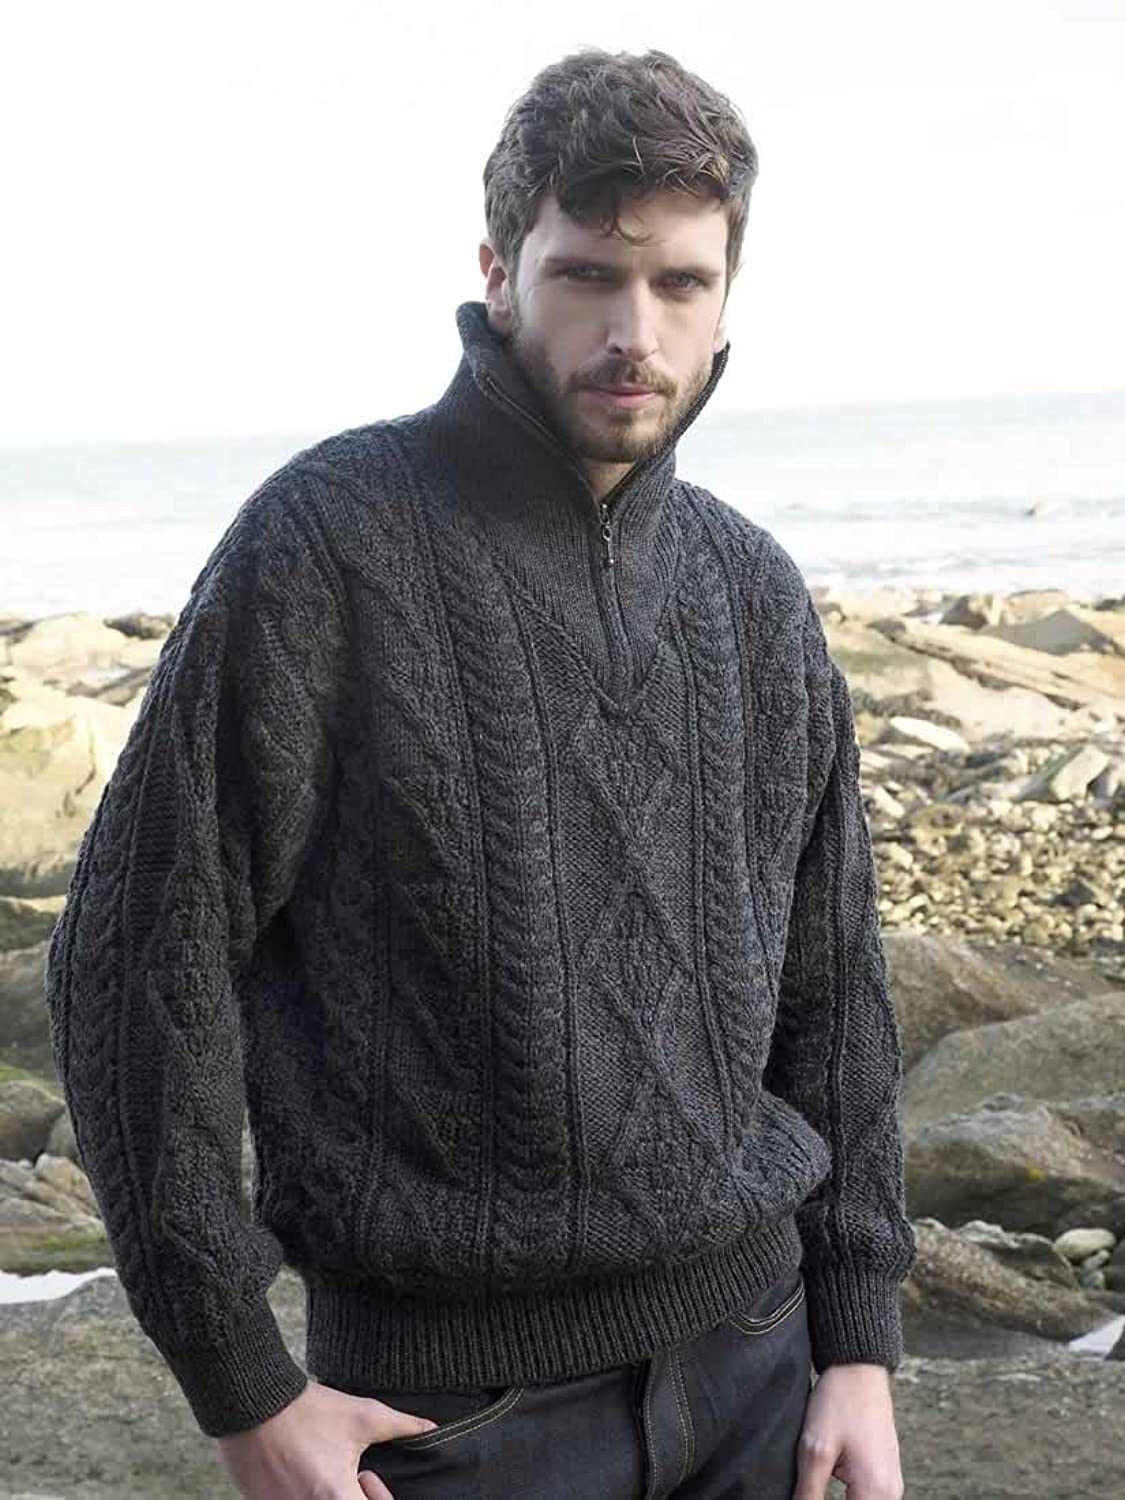 100% Merino Wool Men's Half Zip Knitted Sweater, Charcoal Colour